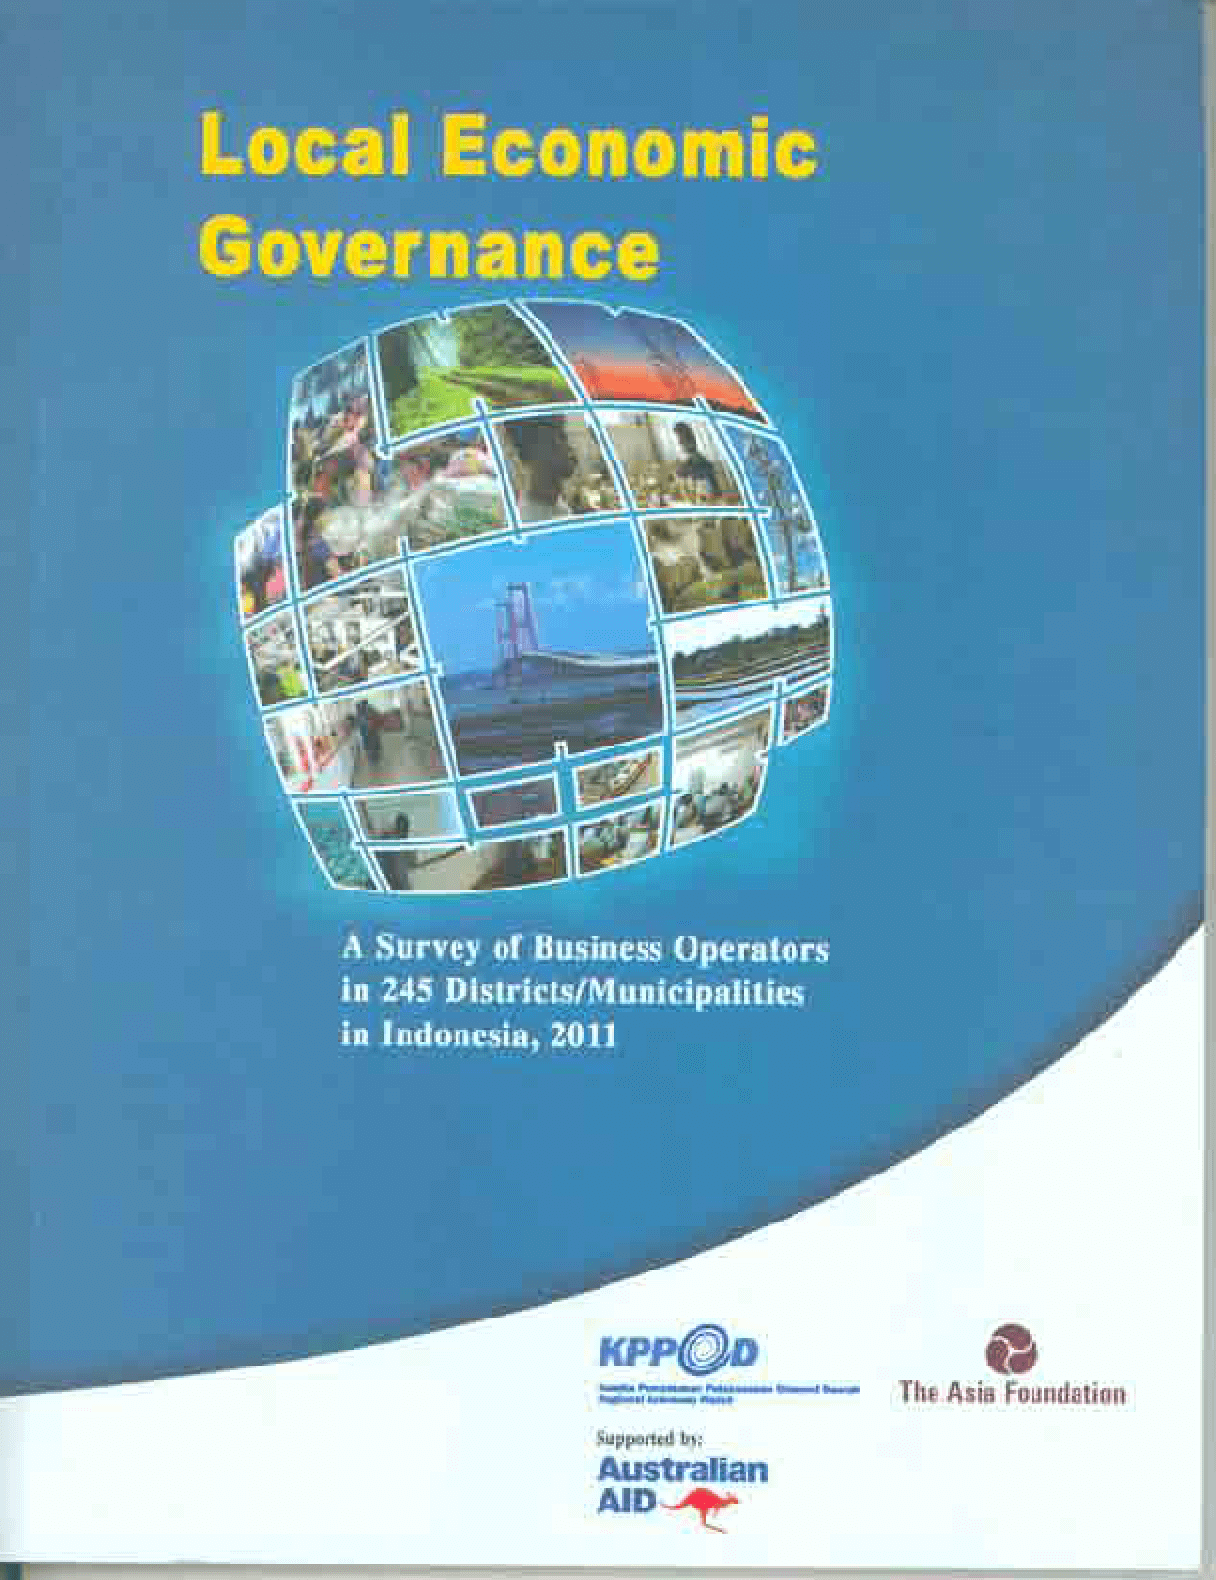 Local Economic Governance: A Survey of Business Operators in 245 Districts/Municipalities in Indonesia, 2011